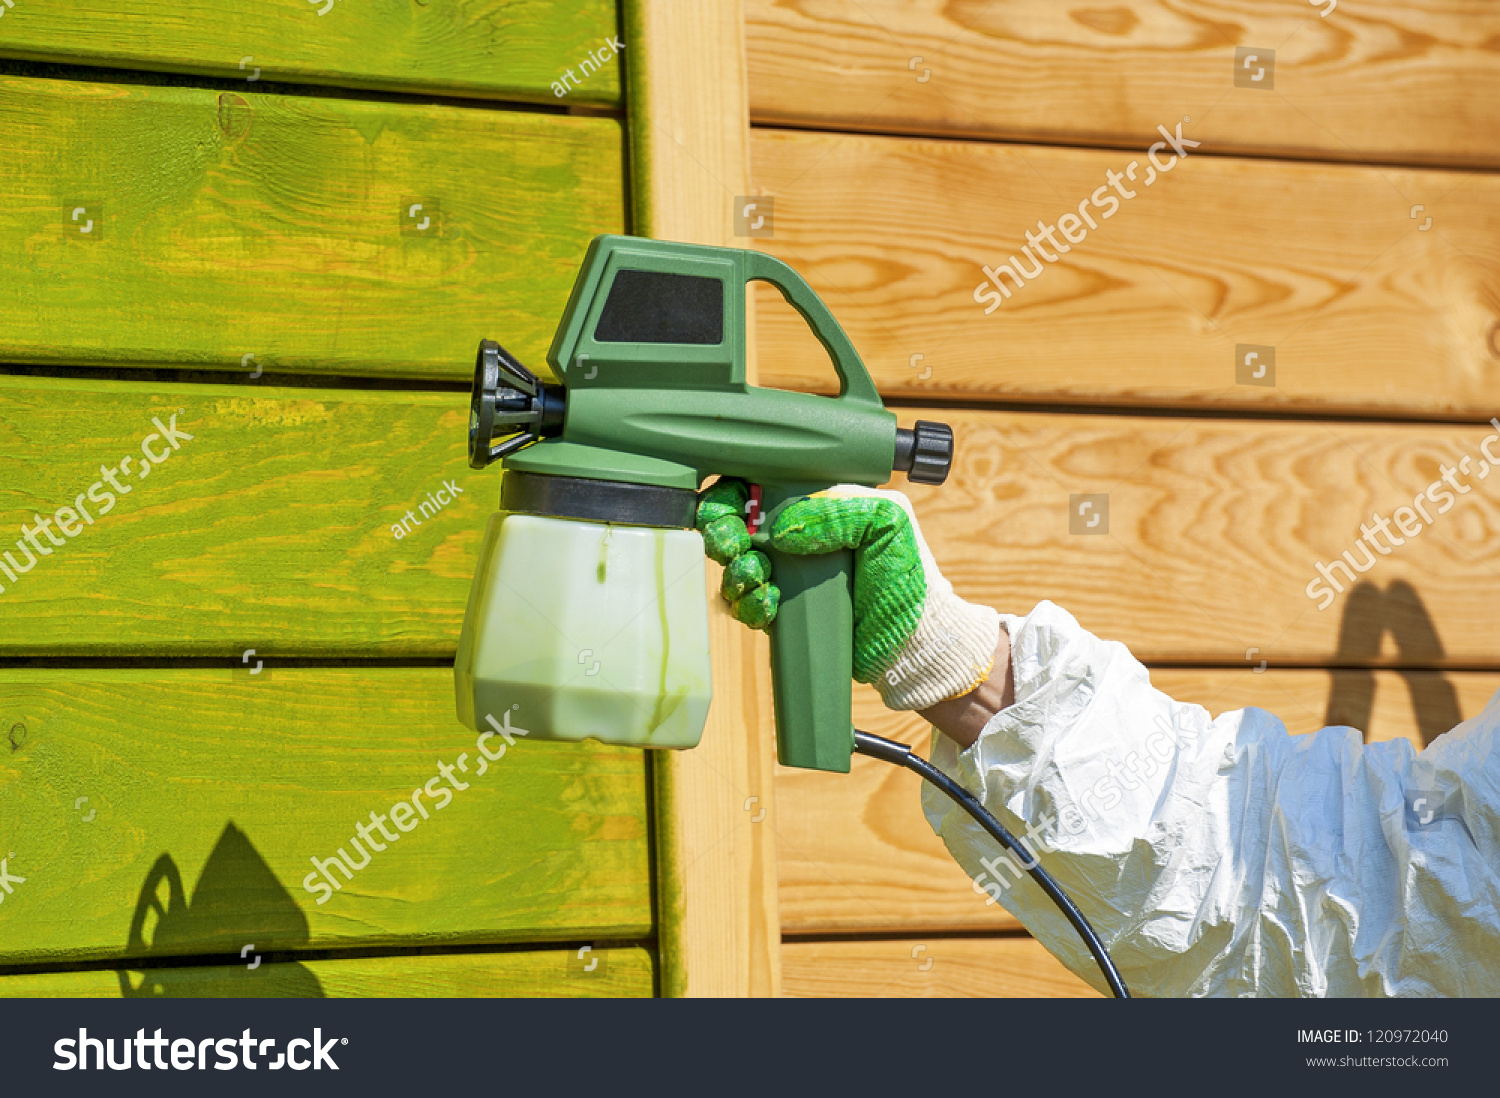 hand painting wooden wall with spray gun in green stock photo. Black Bedroom Furniture Sets. Home Design Ideas